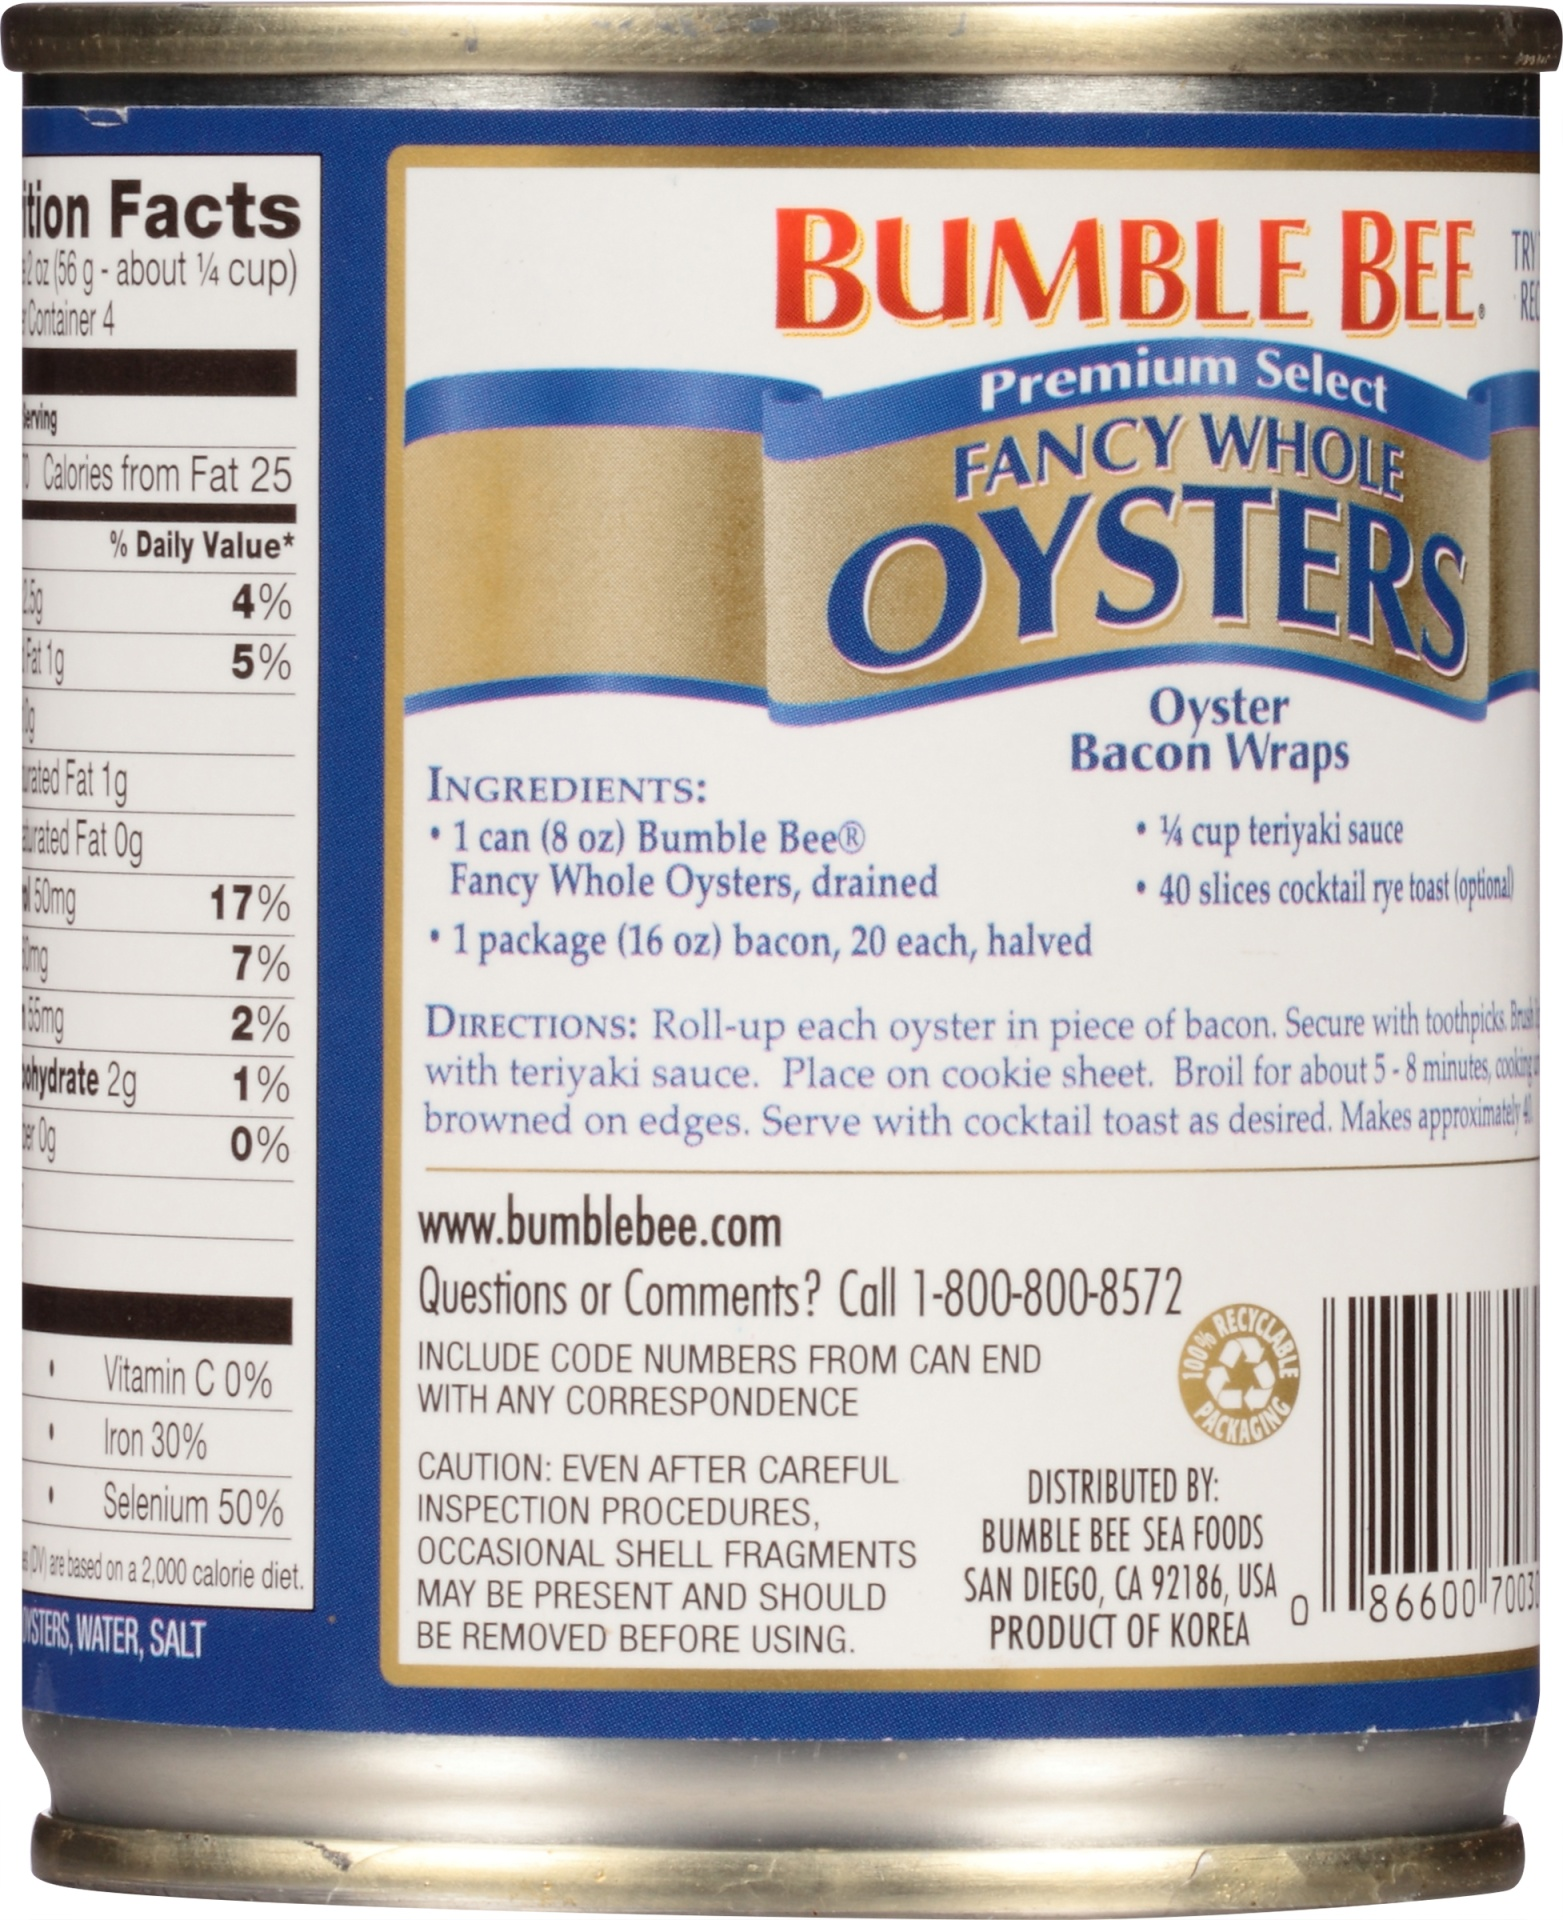 slide 6 of 8, Bumble Bee Whole Fancy Oysters,